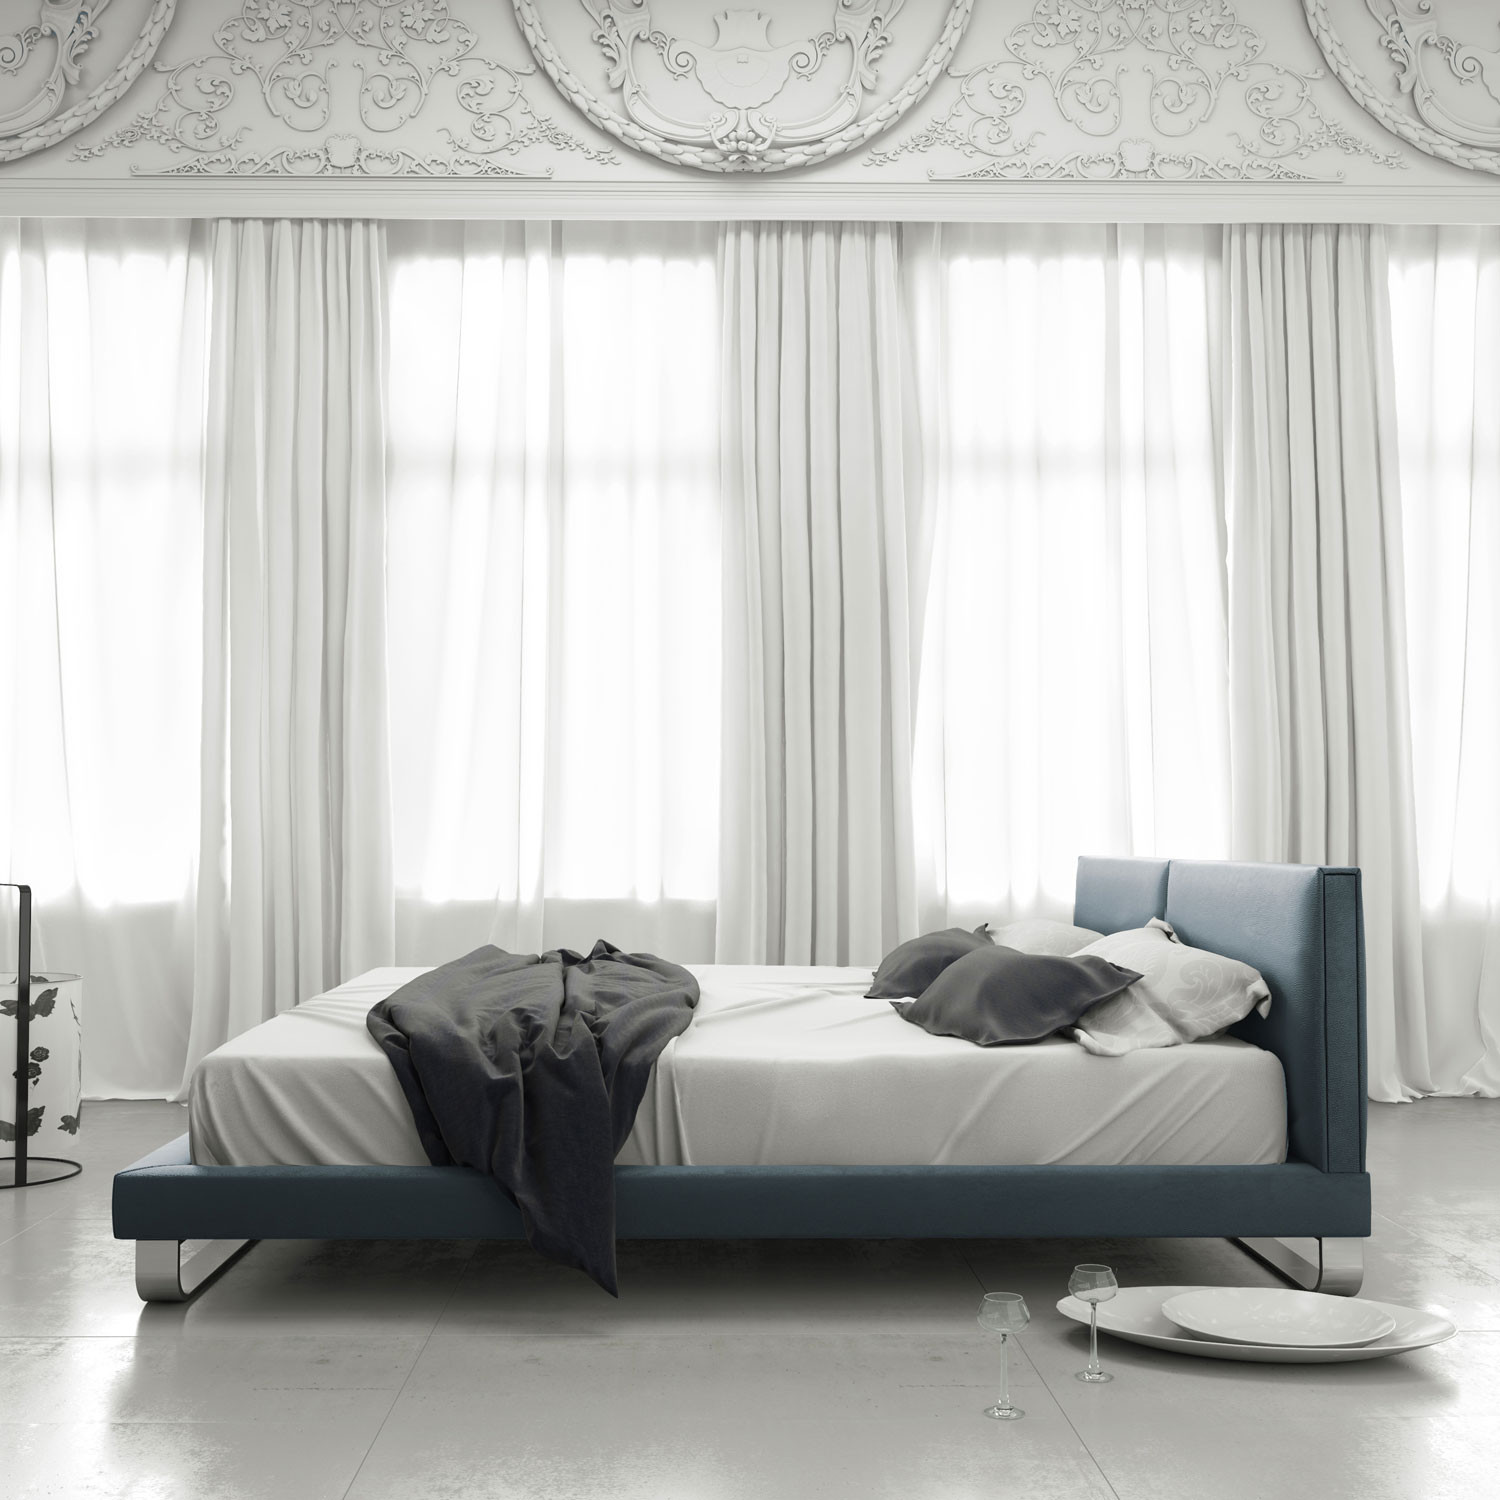 Chelsea Bed Summer Blue Leather California King 81 L X 93 W X 29 H Modloft Bedroom Touch Of Modern